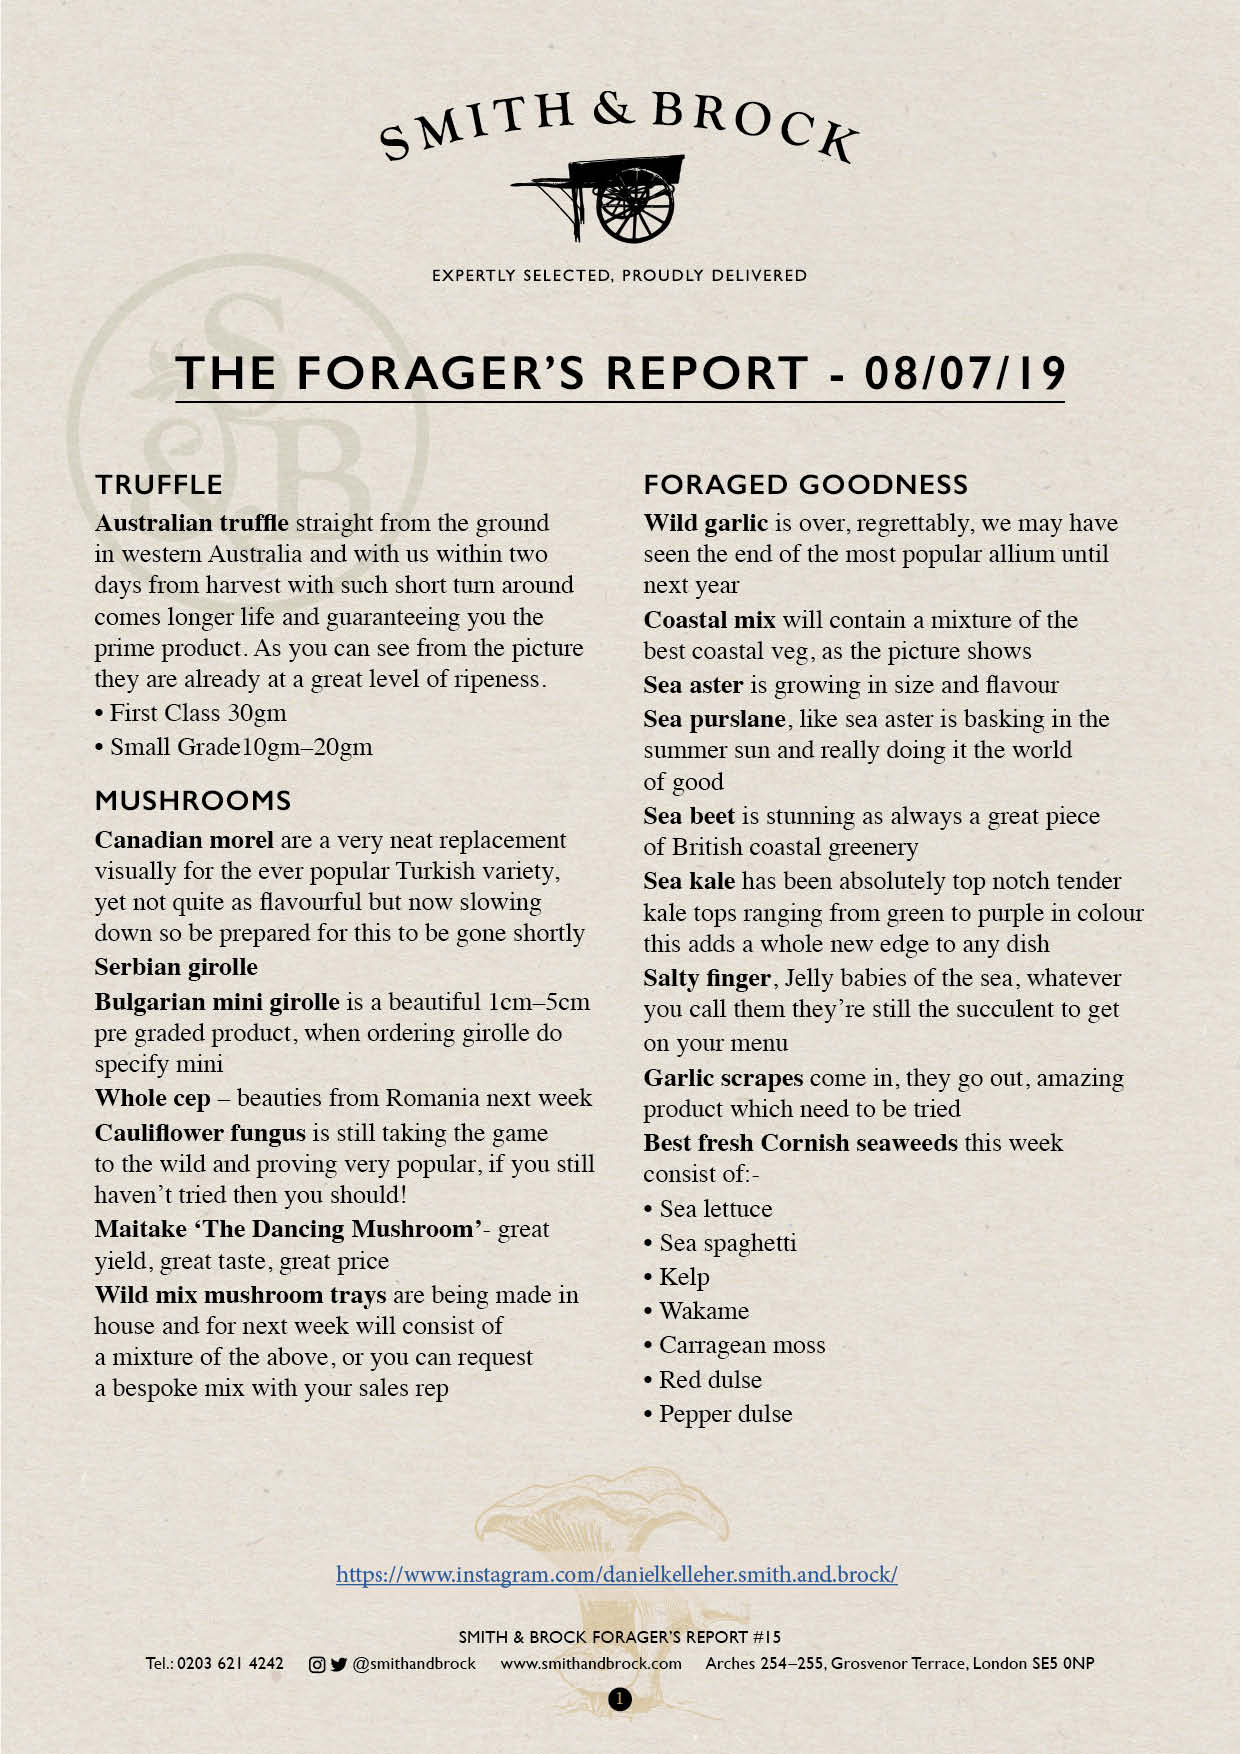 Smith&Brock Foraged Products Report 08 July 2019 15